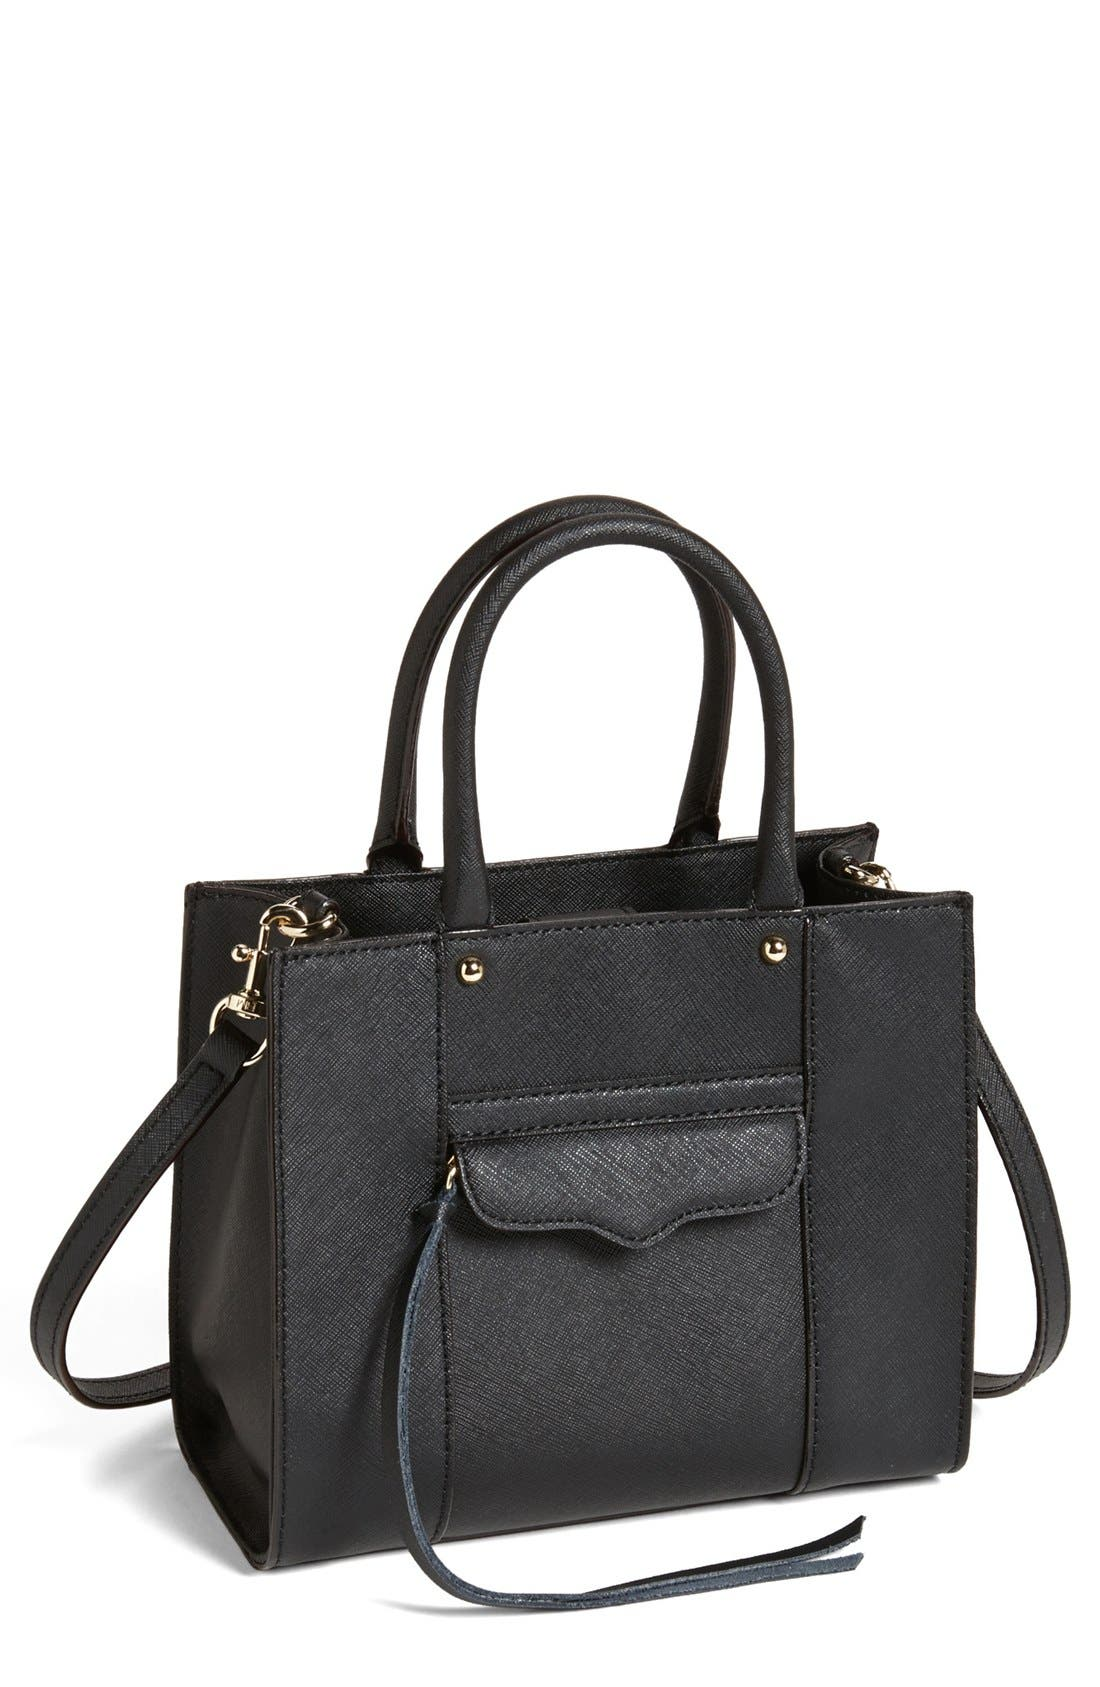 'Mini MAB Tote' Crossbody Bag,                             Main thumbnail 3, color,